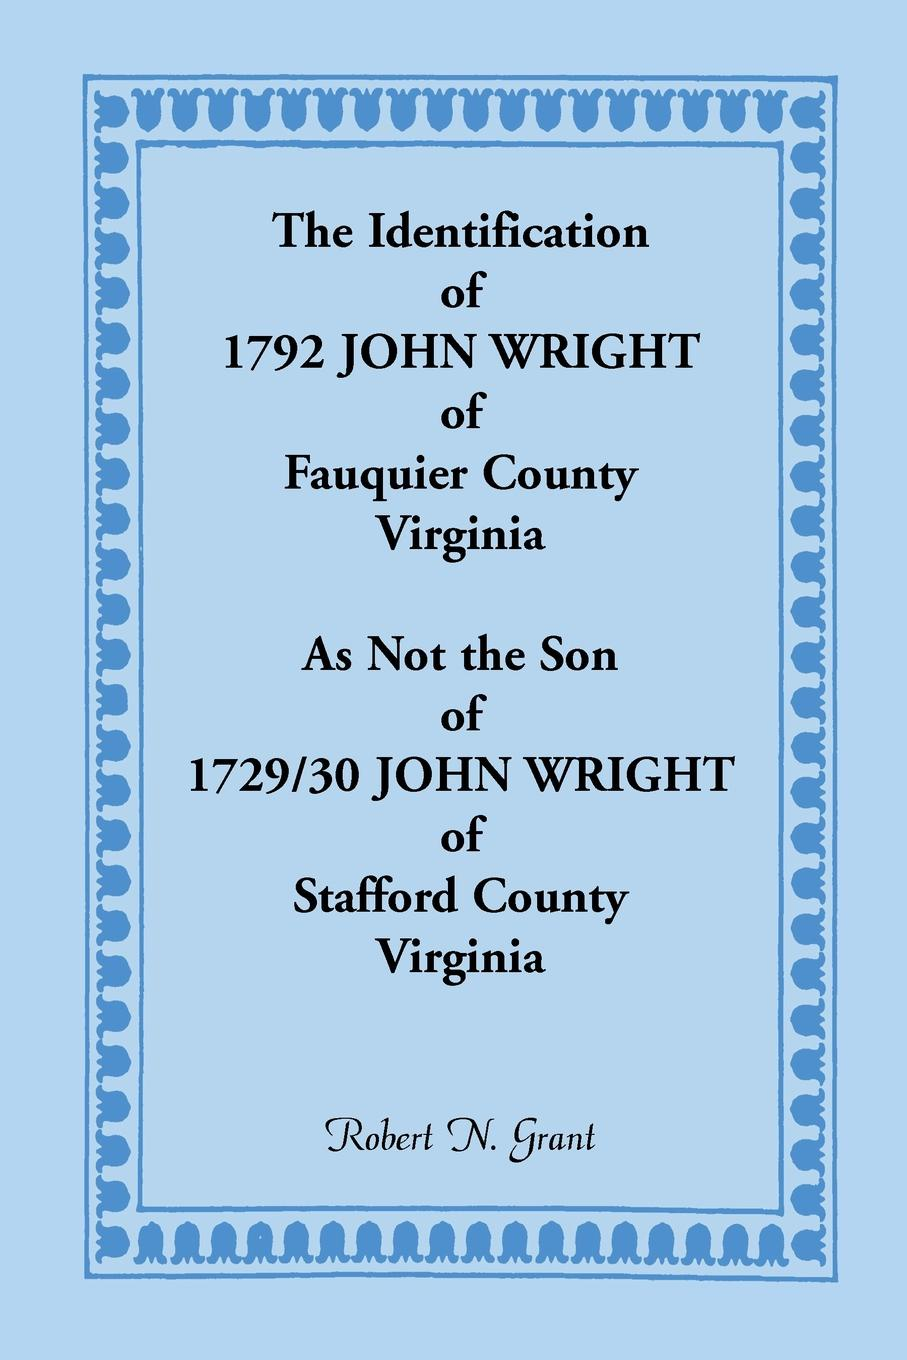 Robert N. Grant The Identification of 1792 John Wright of Fauquier County, Virginia, as Not the Son of 1792/30 John Wright of Stafford County, Virginia luke wright the toll